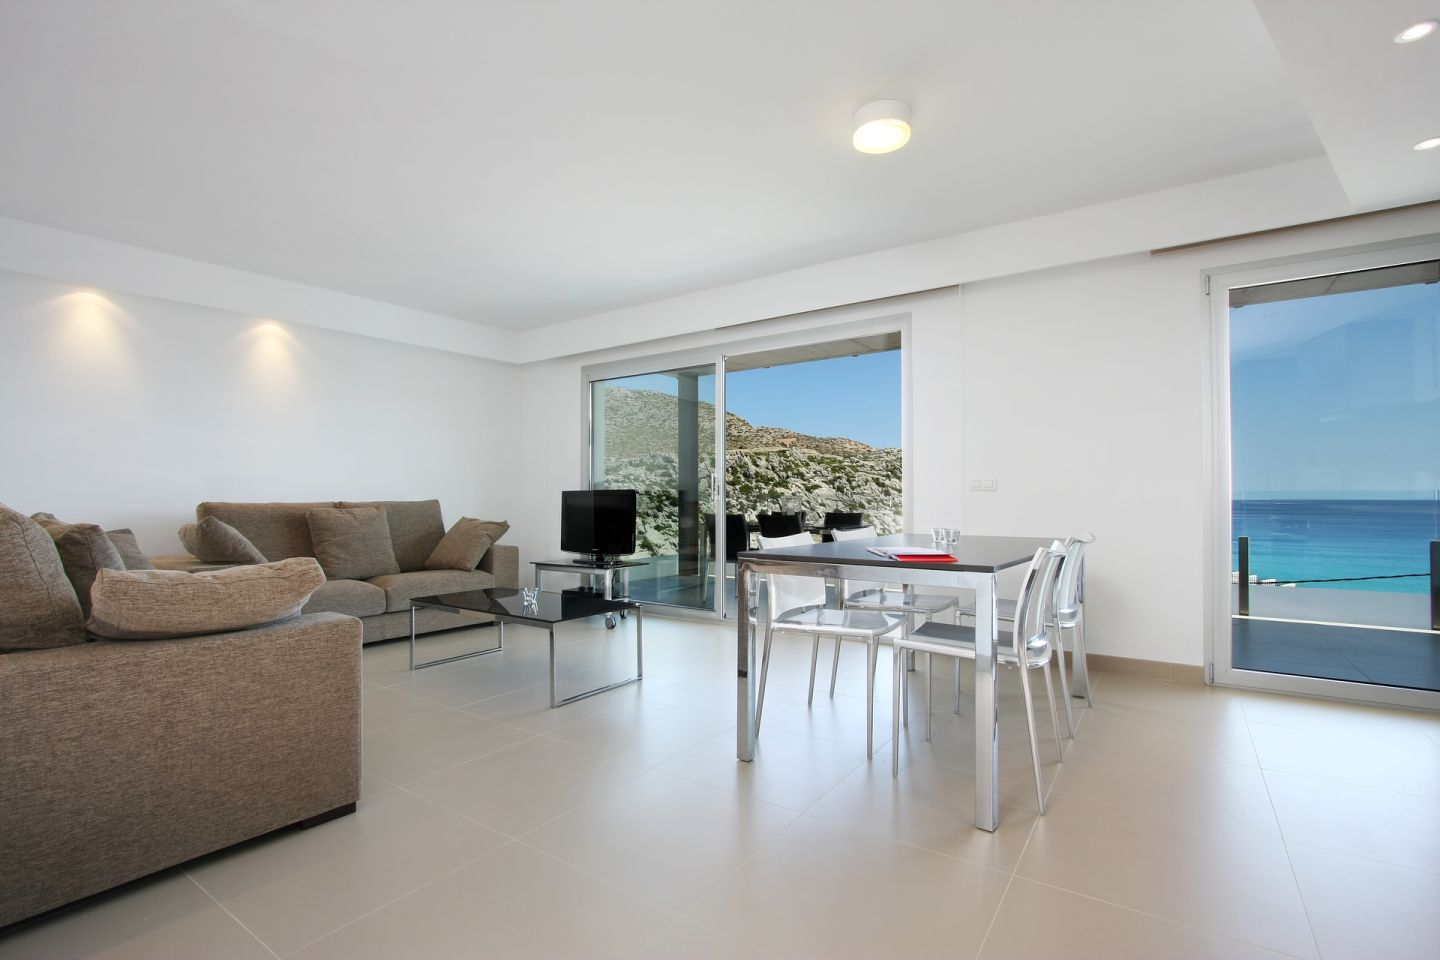 2 Bed Building for sale in Cala San Vicente 5